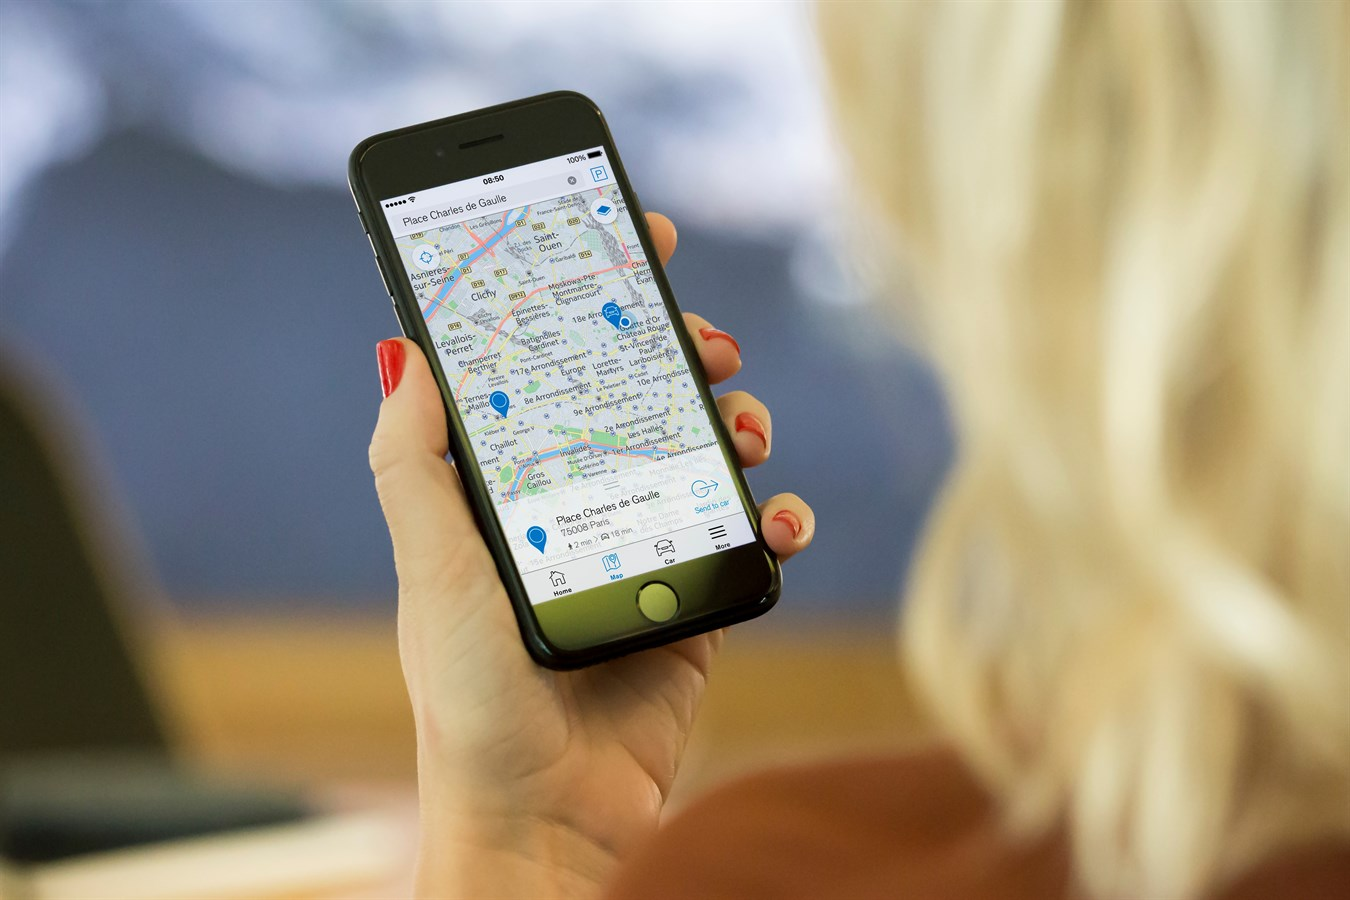 Volvo On Call simplifies each journey